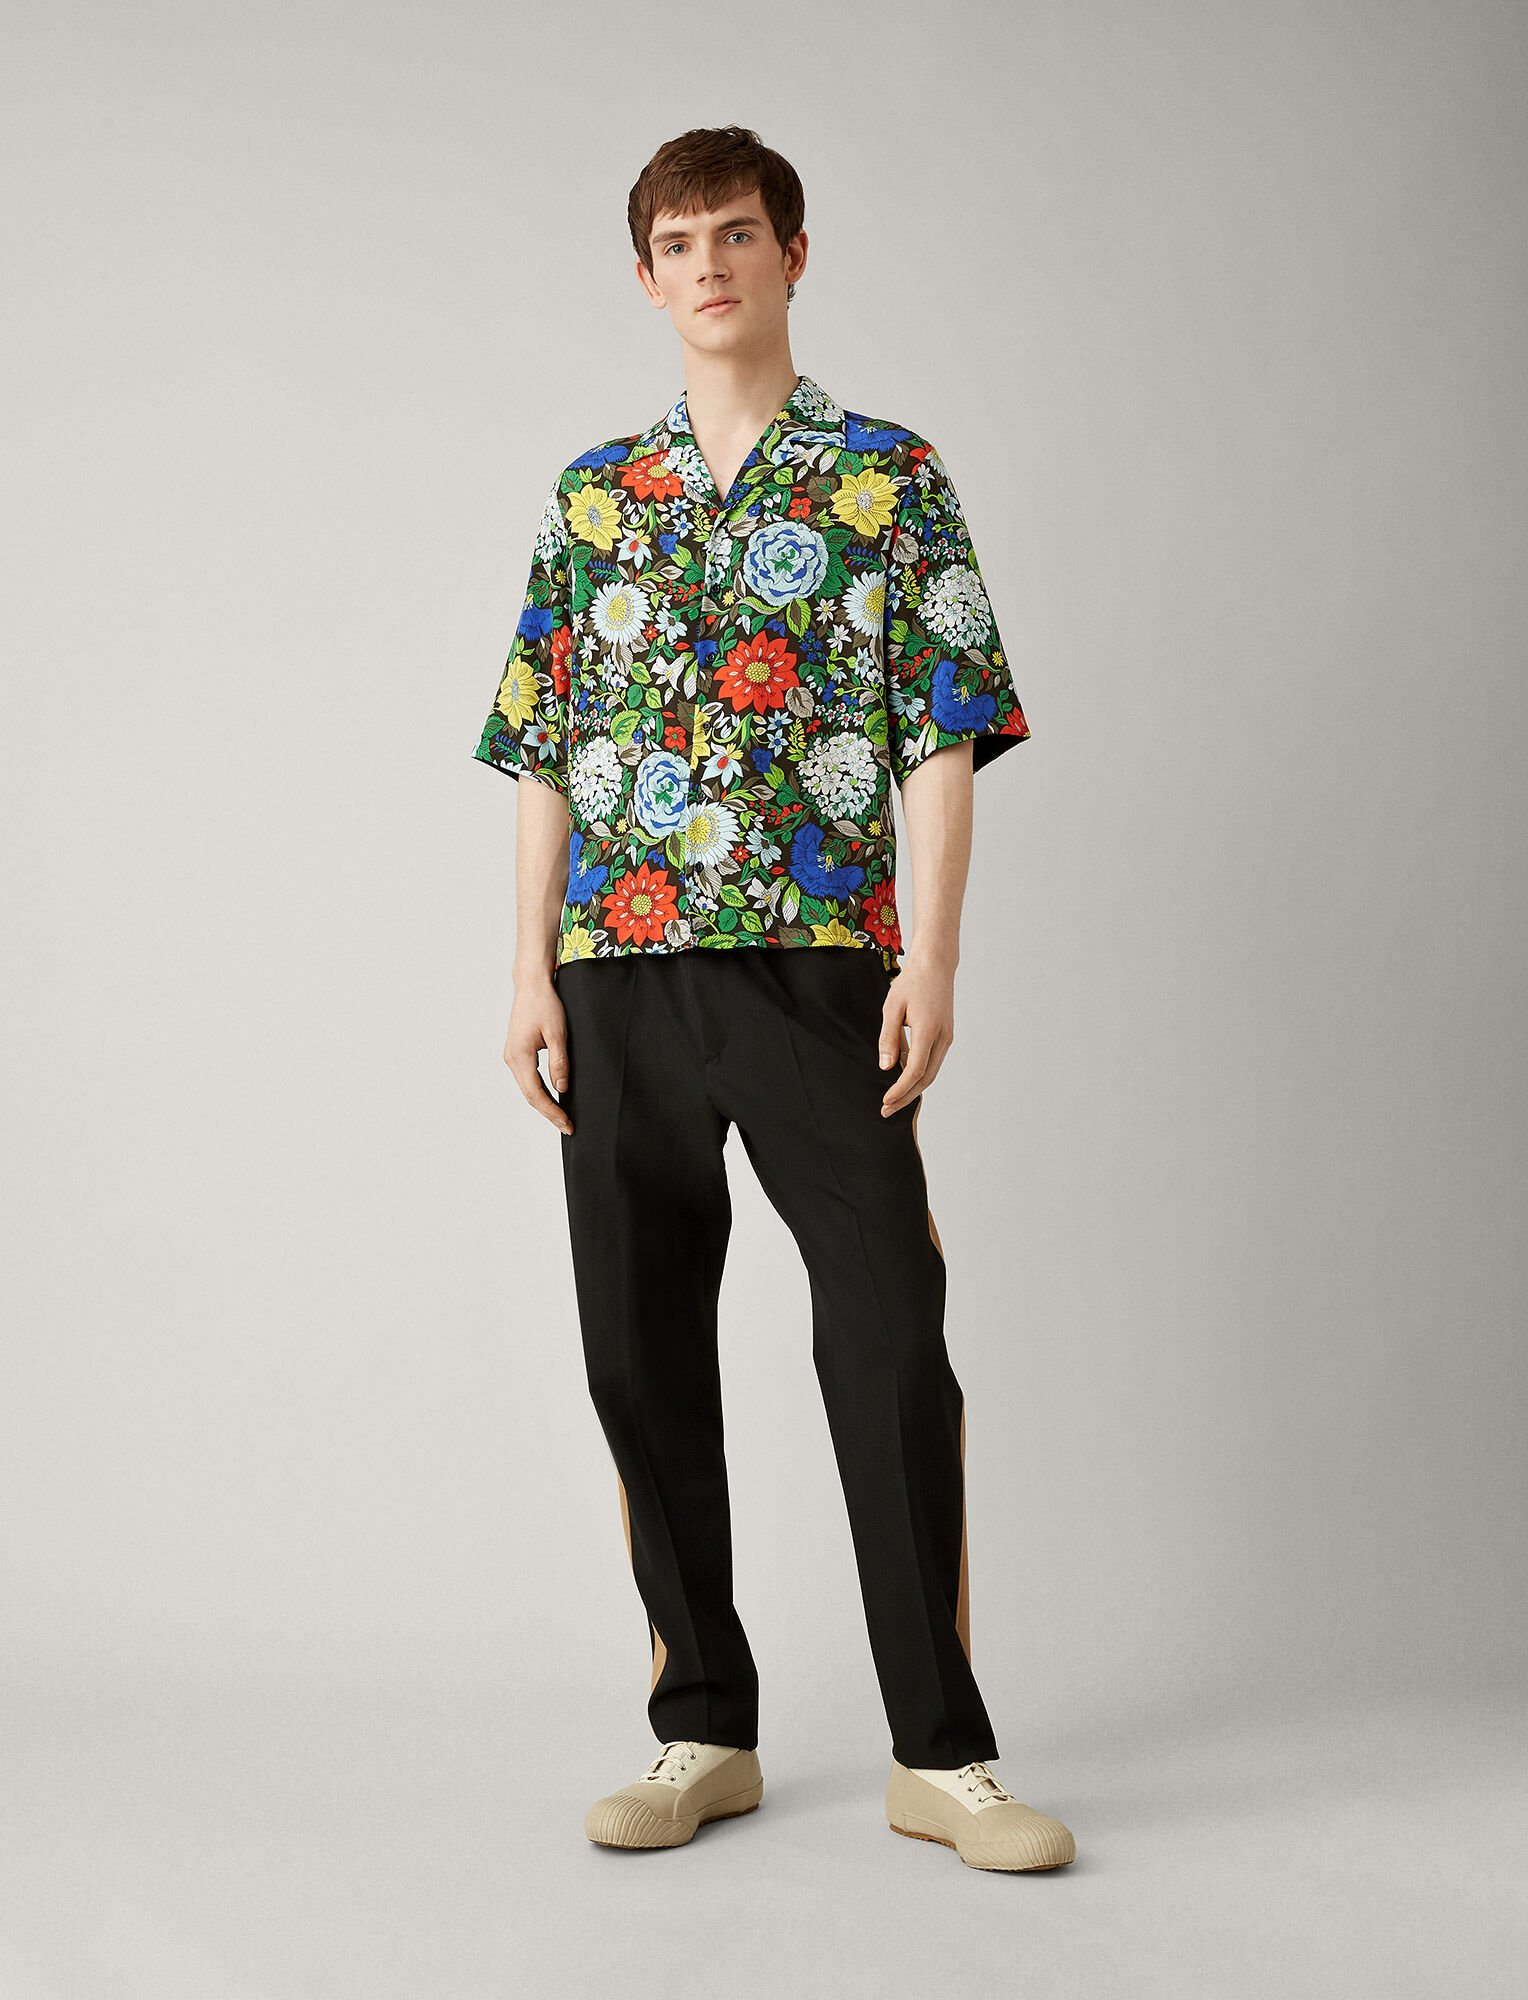 Joseph, Marittima Botanical Floral Shirt, in MULTICOLOUR